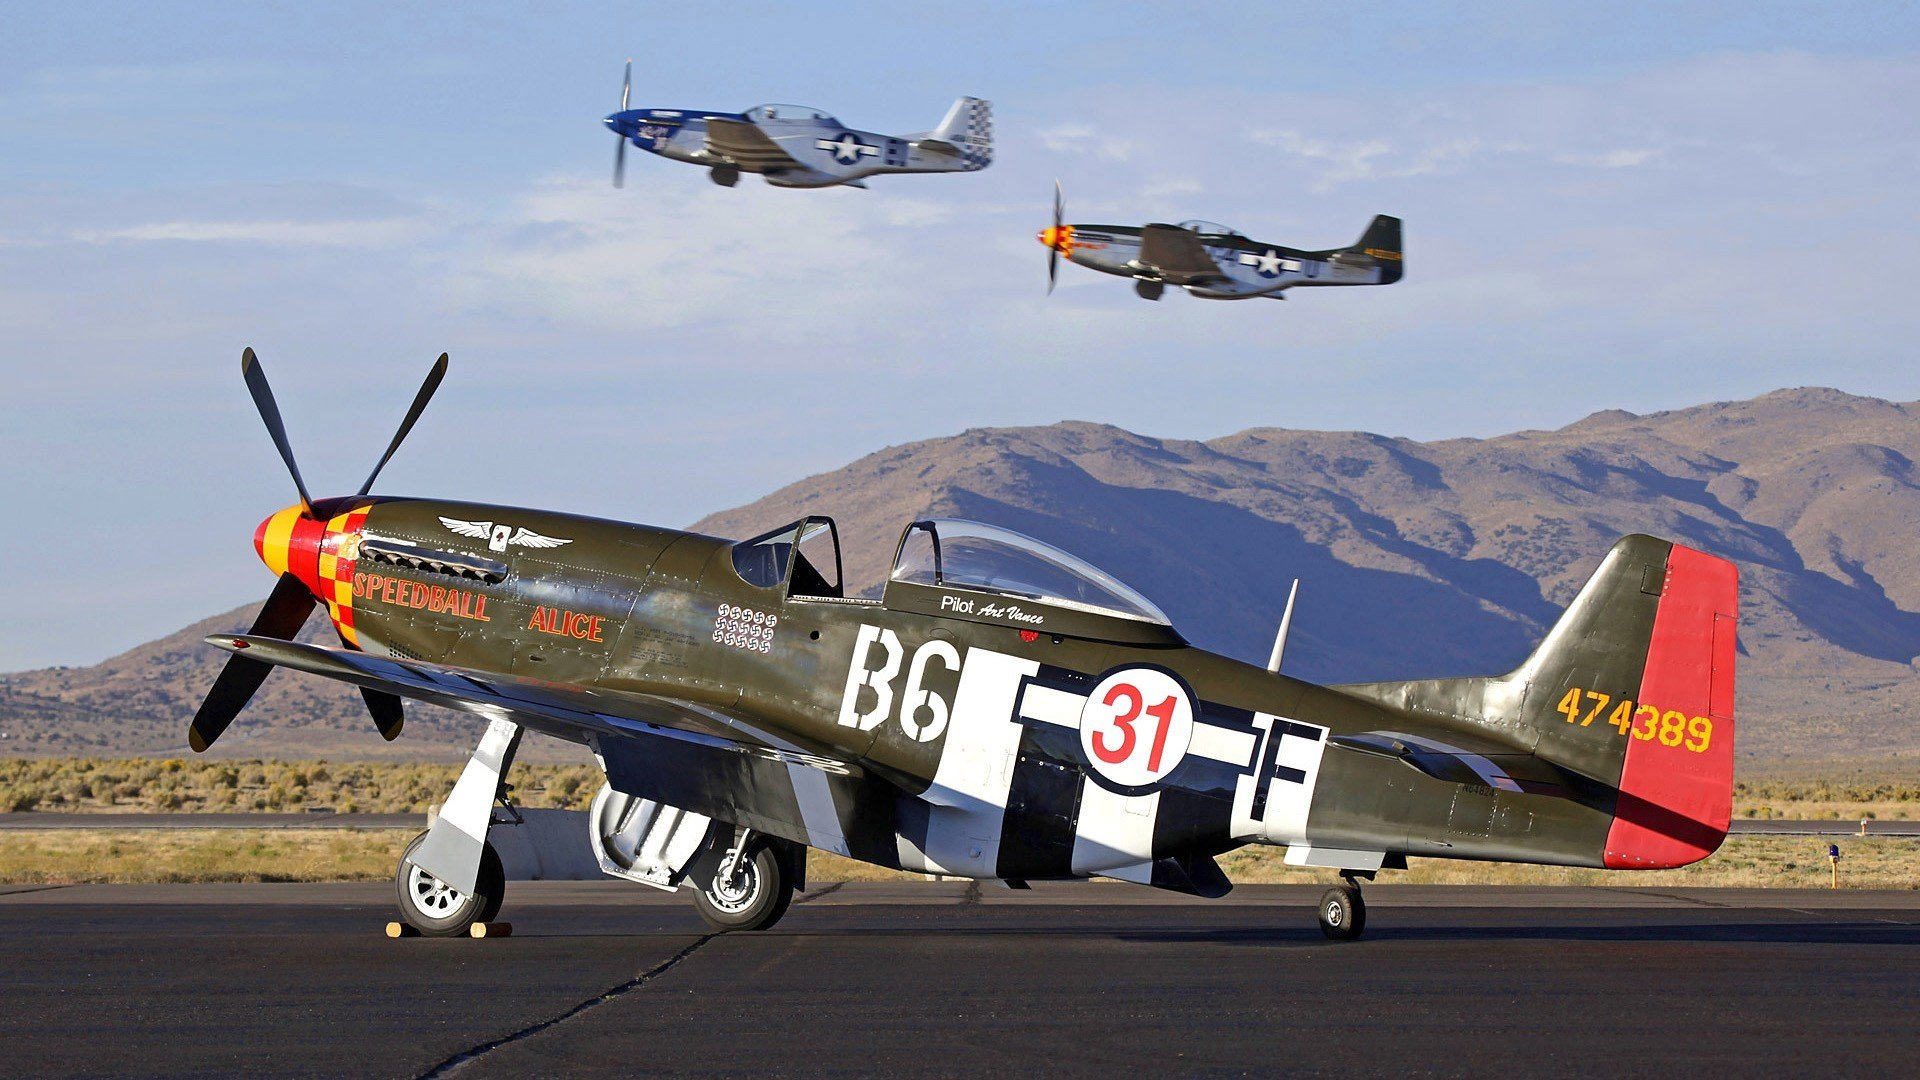 mustang wallpaper warbird aircraft wallpapersjpg 1920x1080